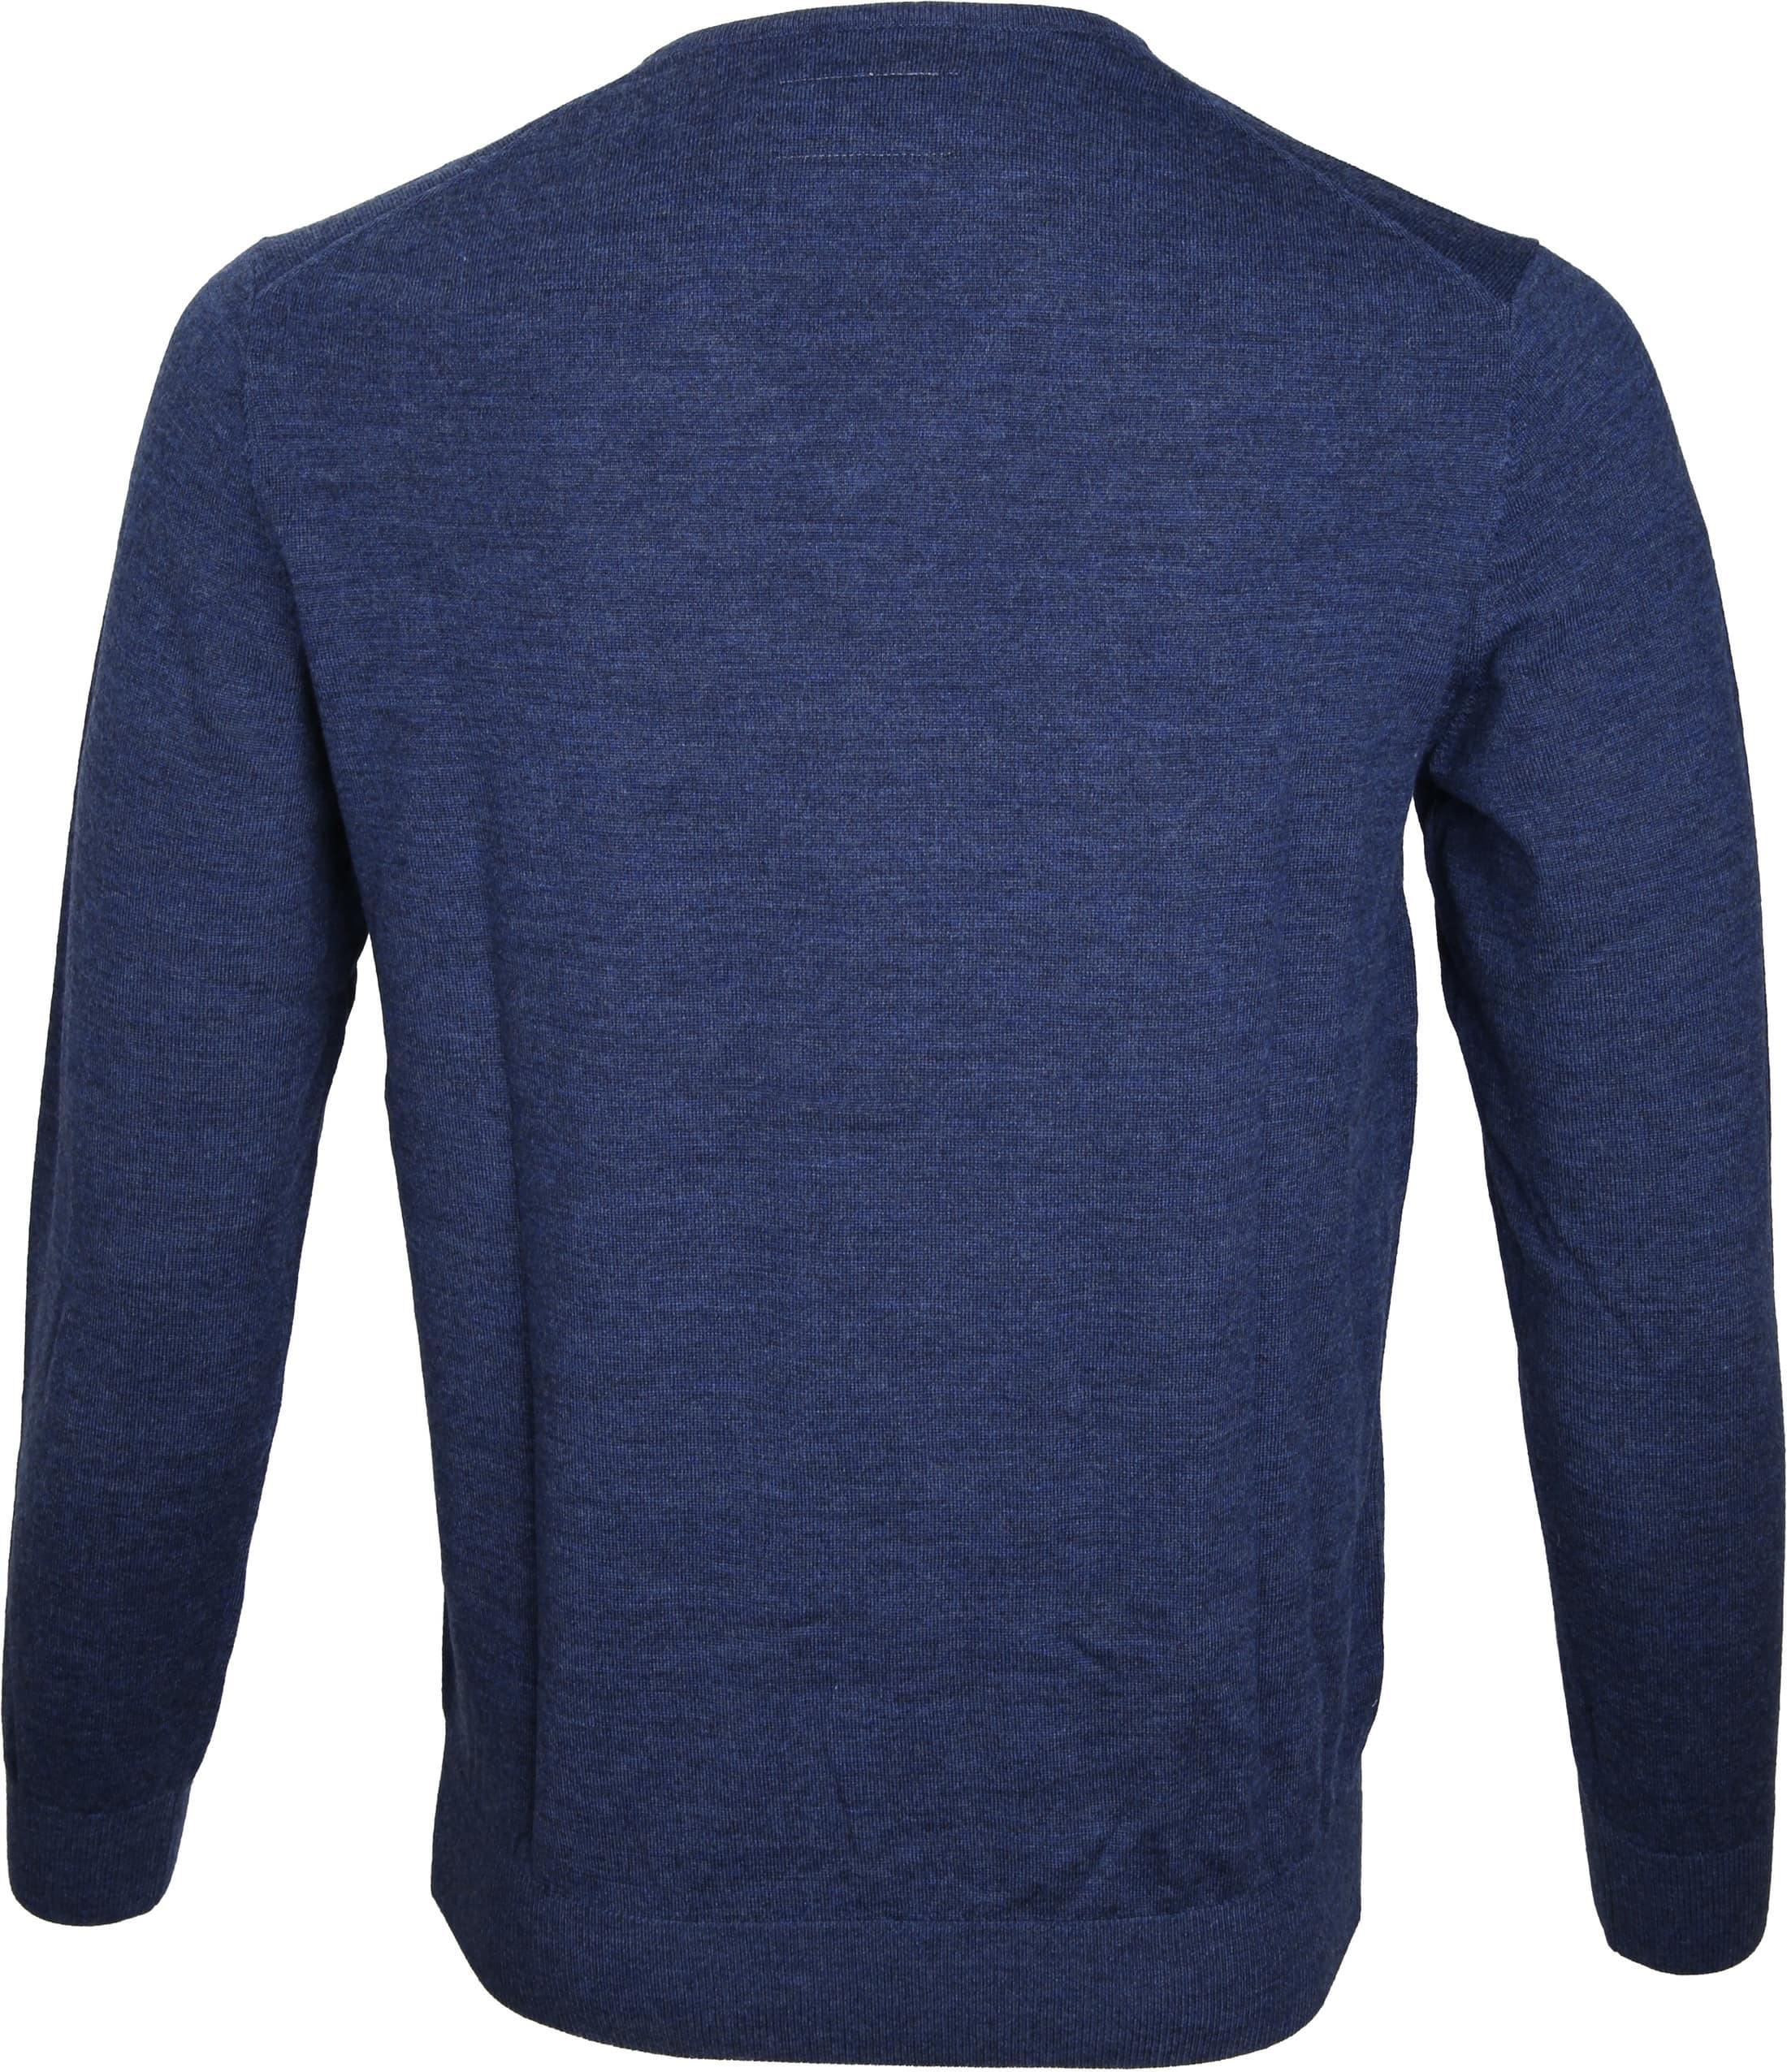 Suitable Prestige Pullover V-Ausschnitt Navy foto 3